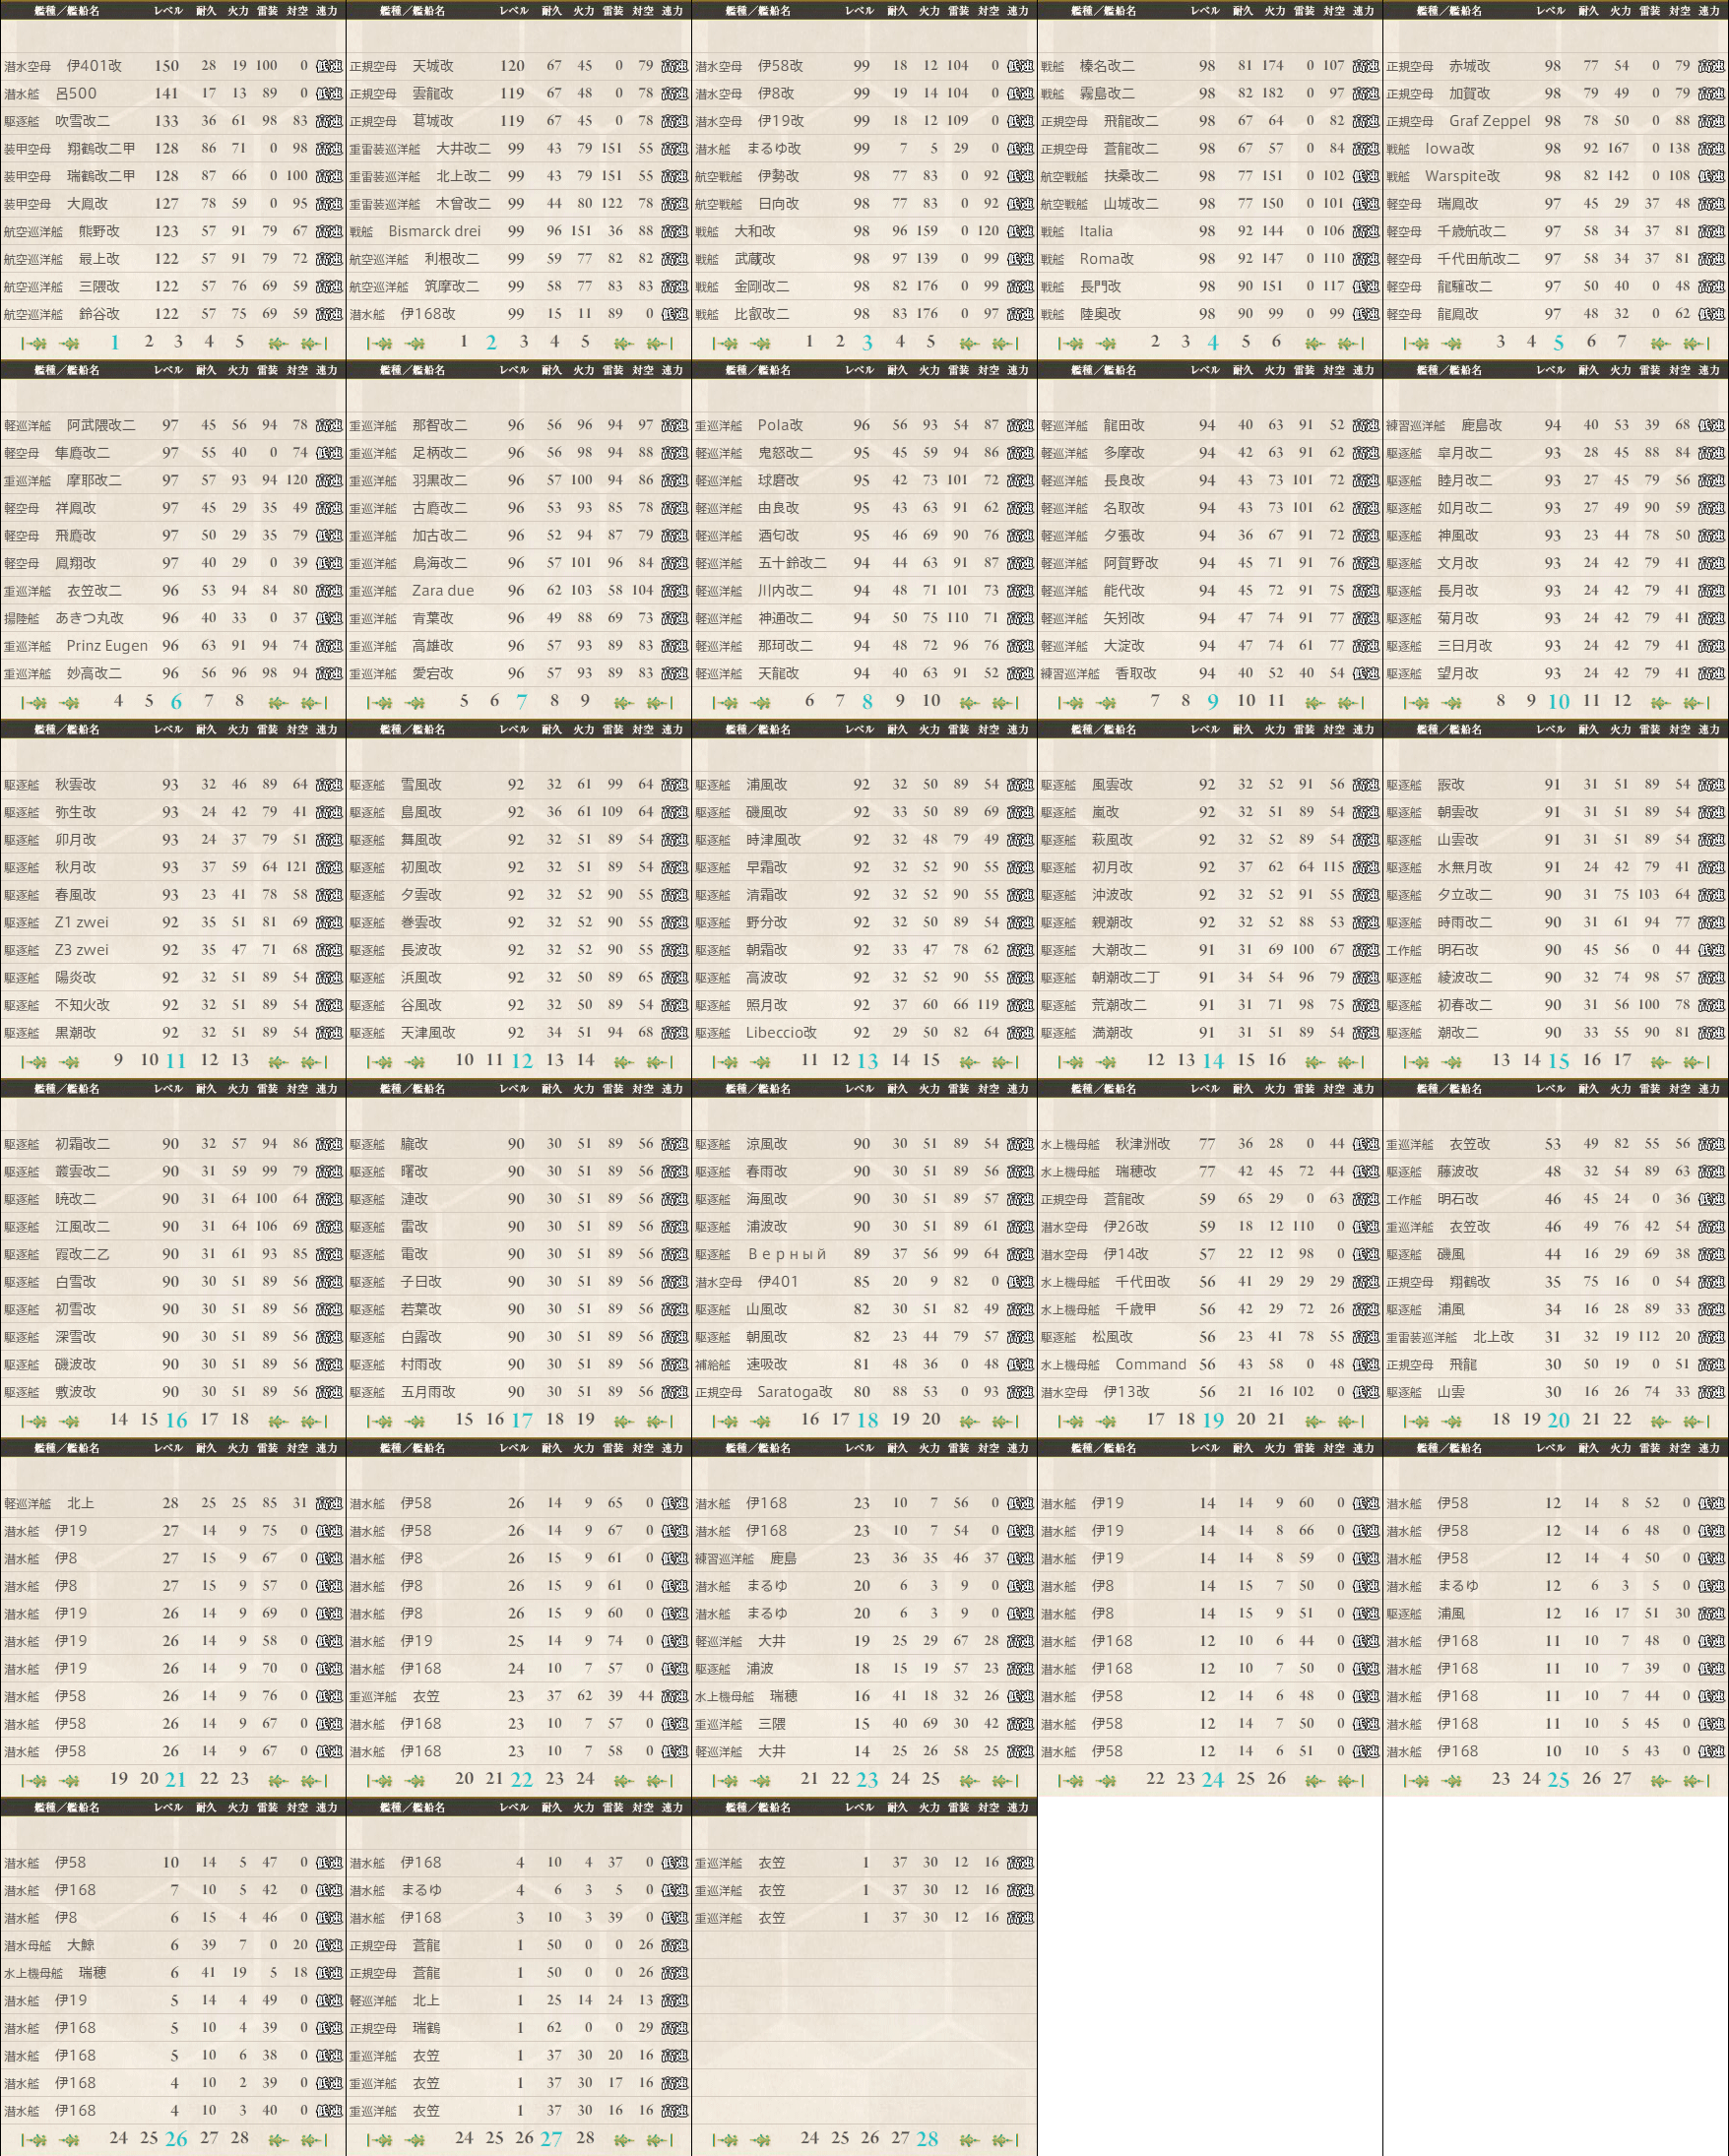 data.kancolle.levelsort.20170402.png